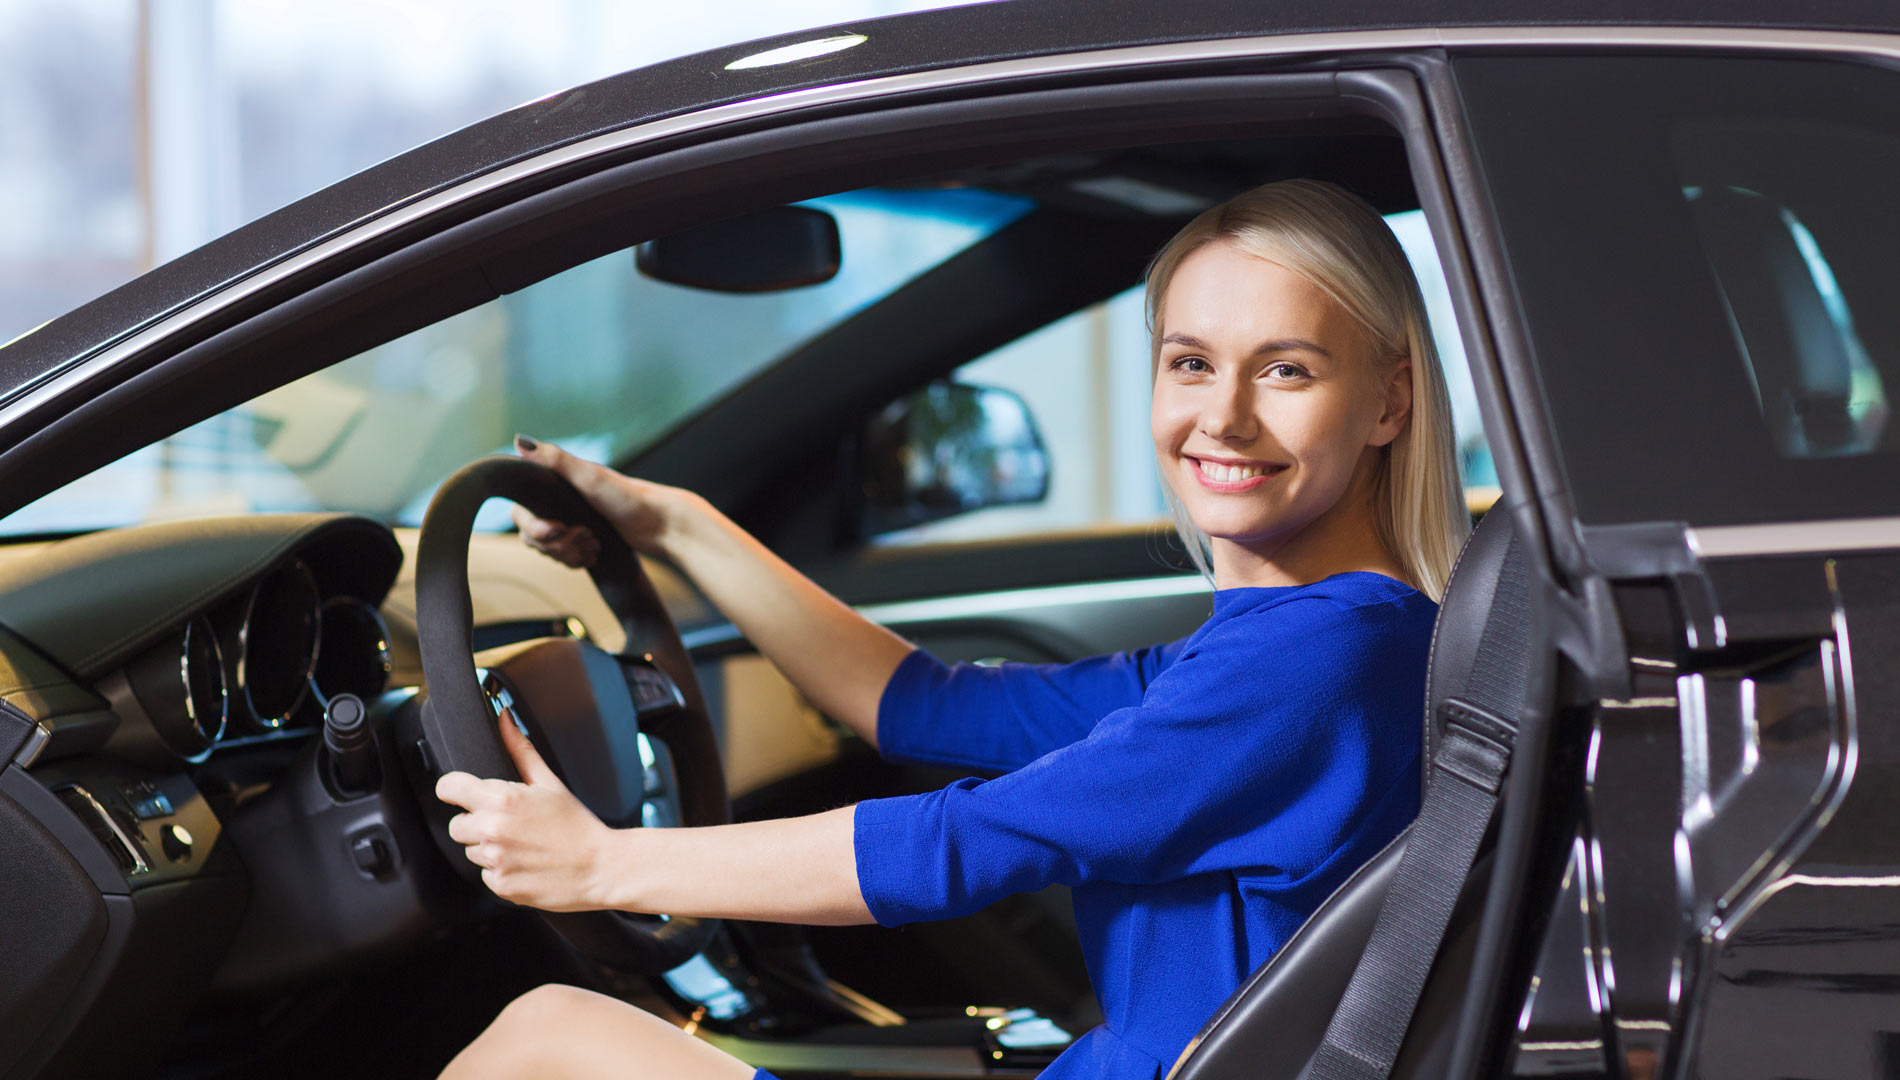 Be an Excellent Driver to Hit The Road Safely